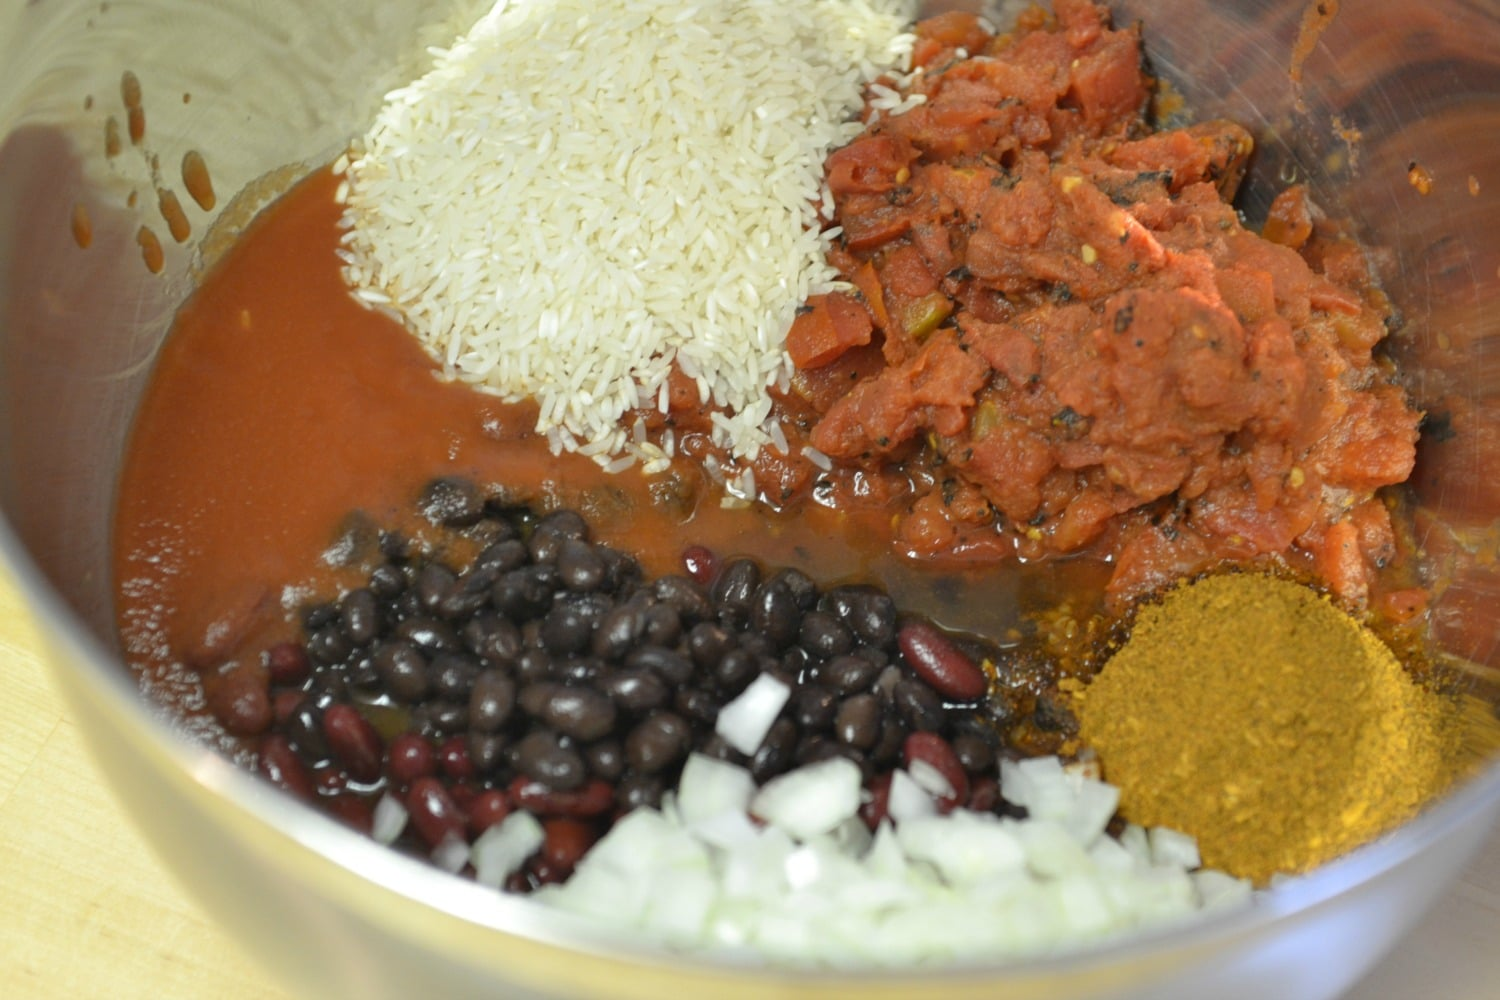 Mix together tomato sauce, beans, seasonings, and rice in a large bowl.